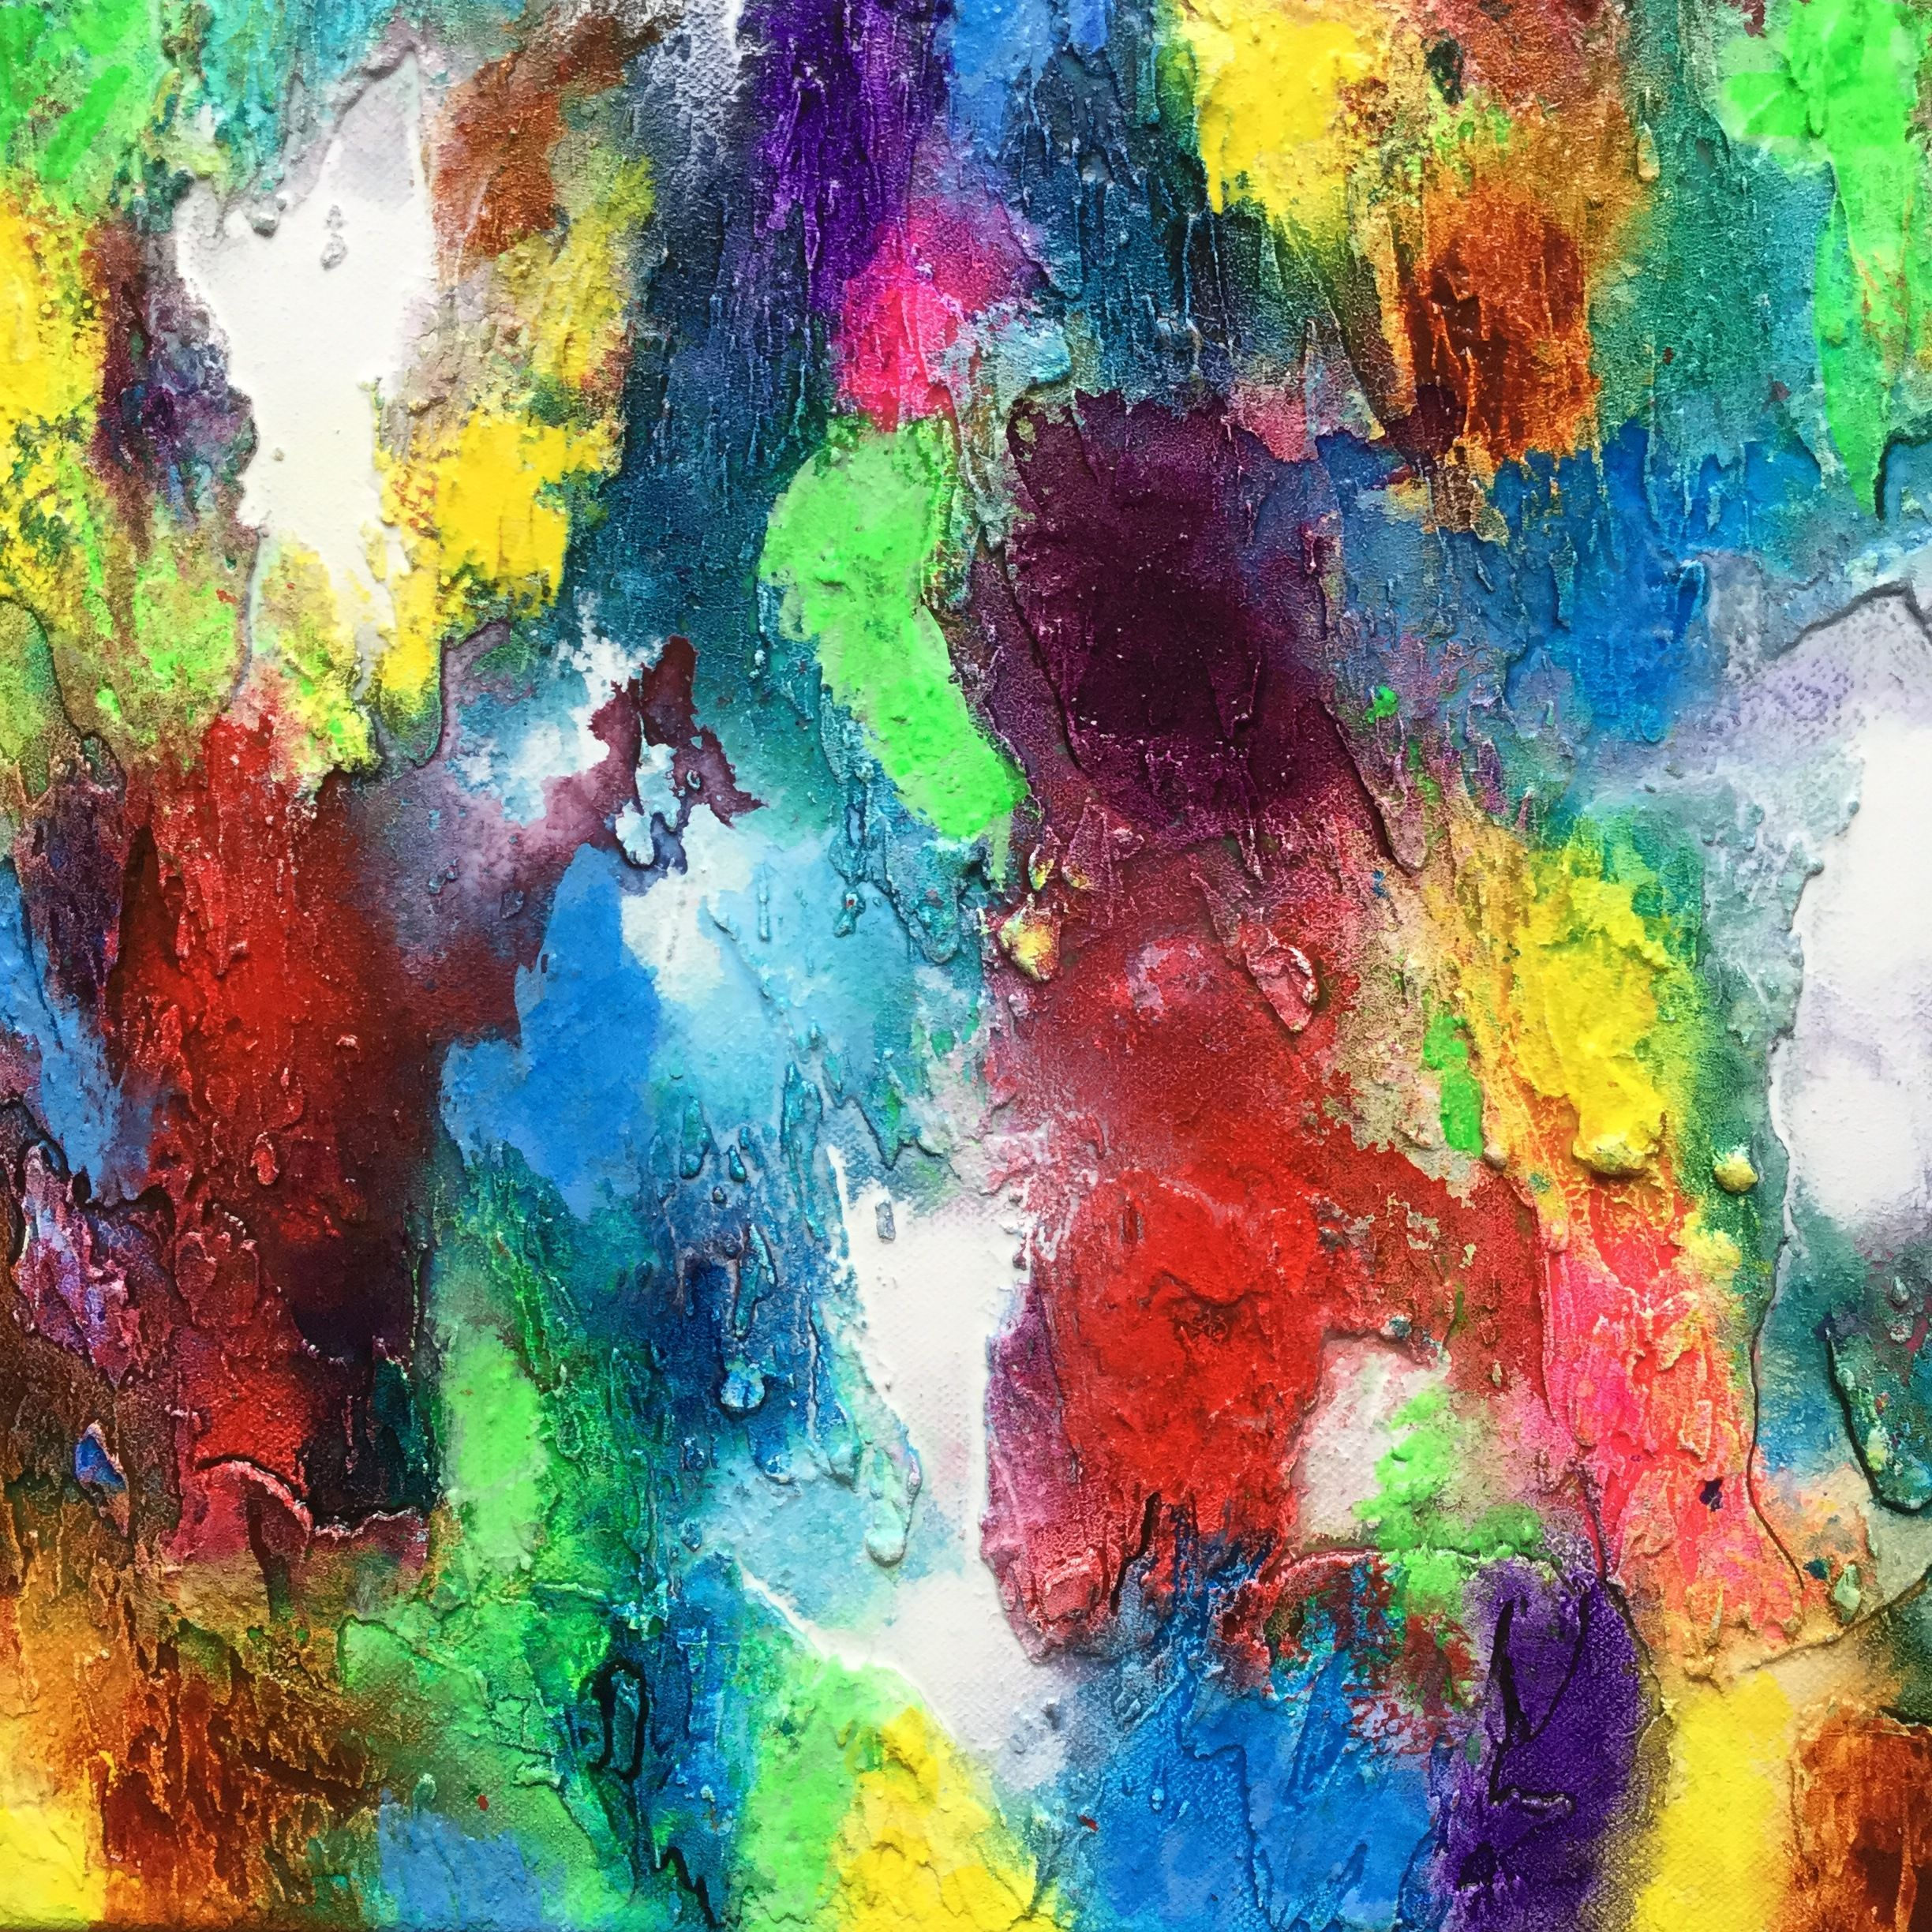 Details From My New Painting Alteration Iii My Website Art Painting Artbylonfeldt